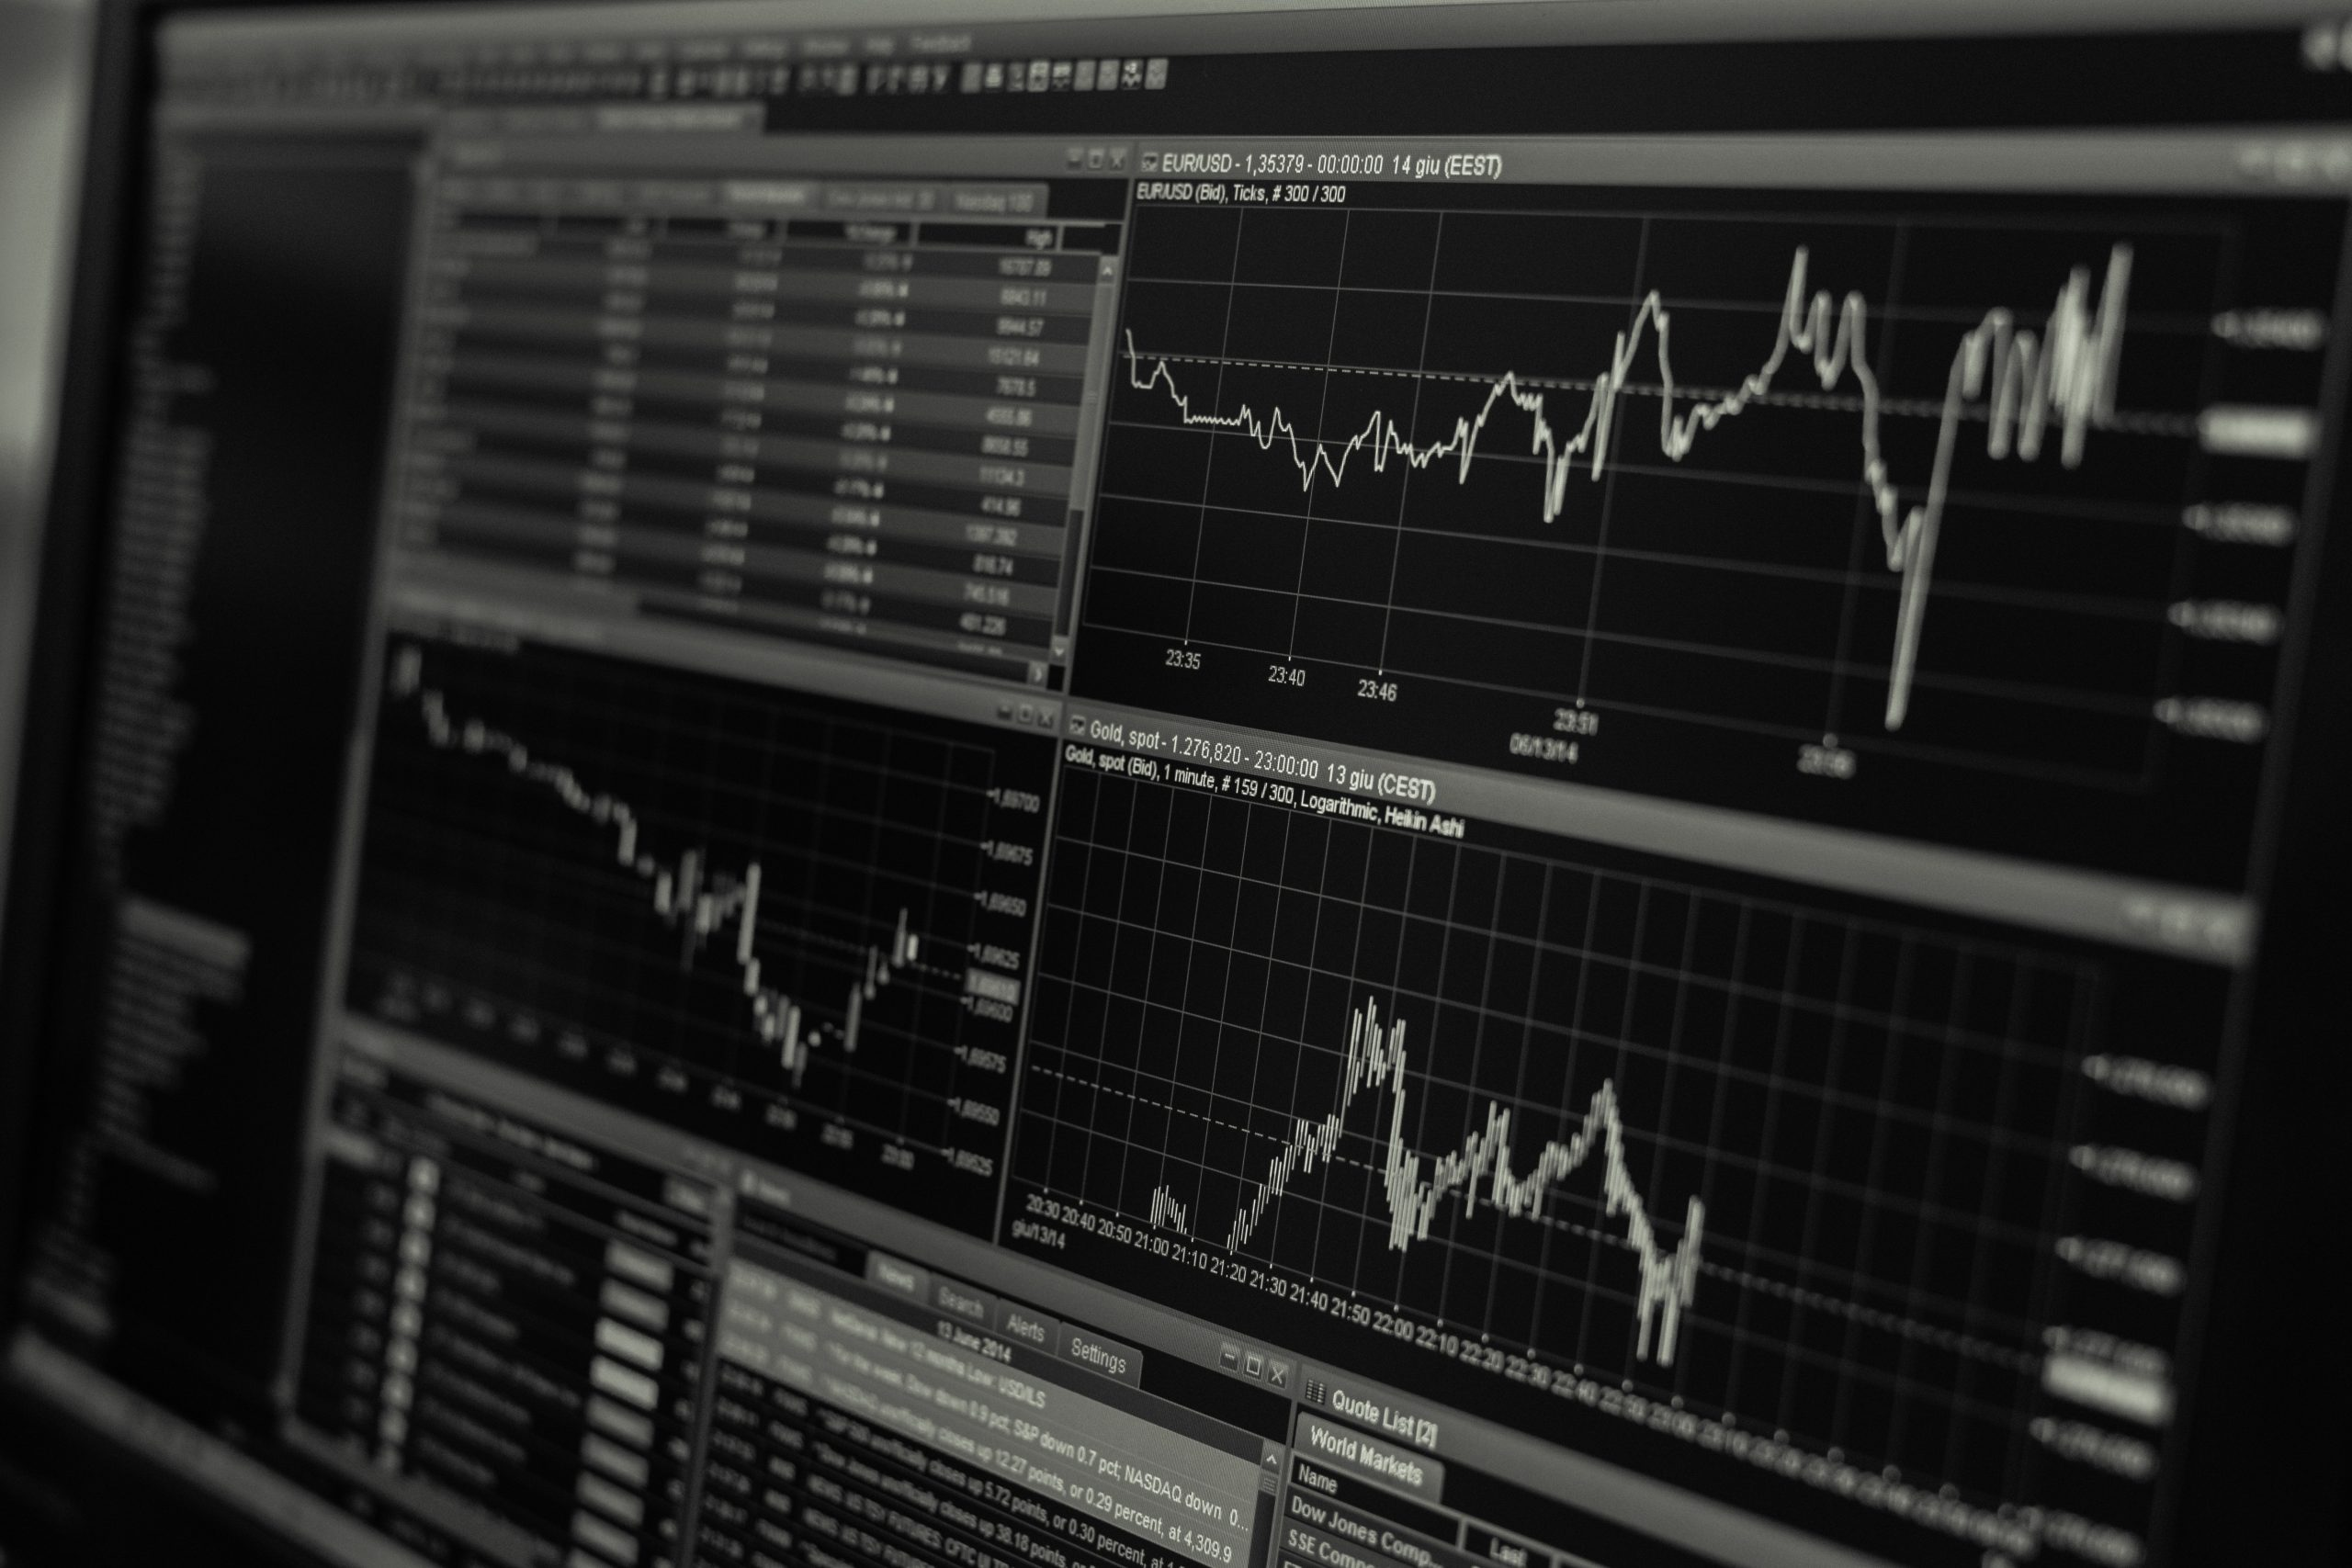 Why Forex Trading Over Any Other Trade Market? Check Out The Details Below!